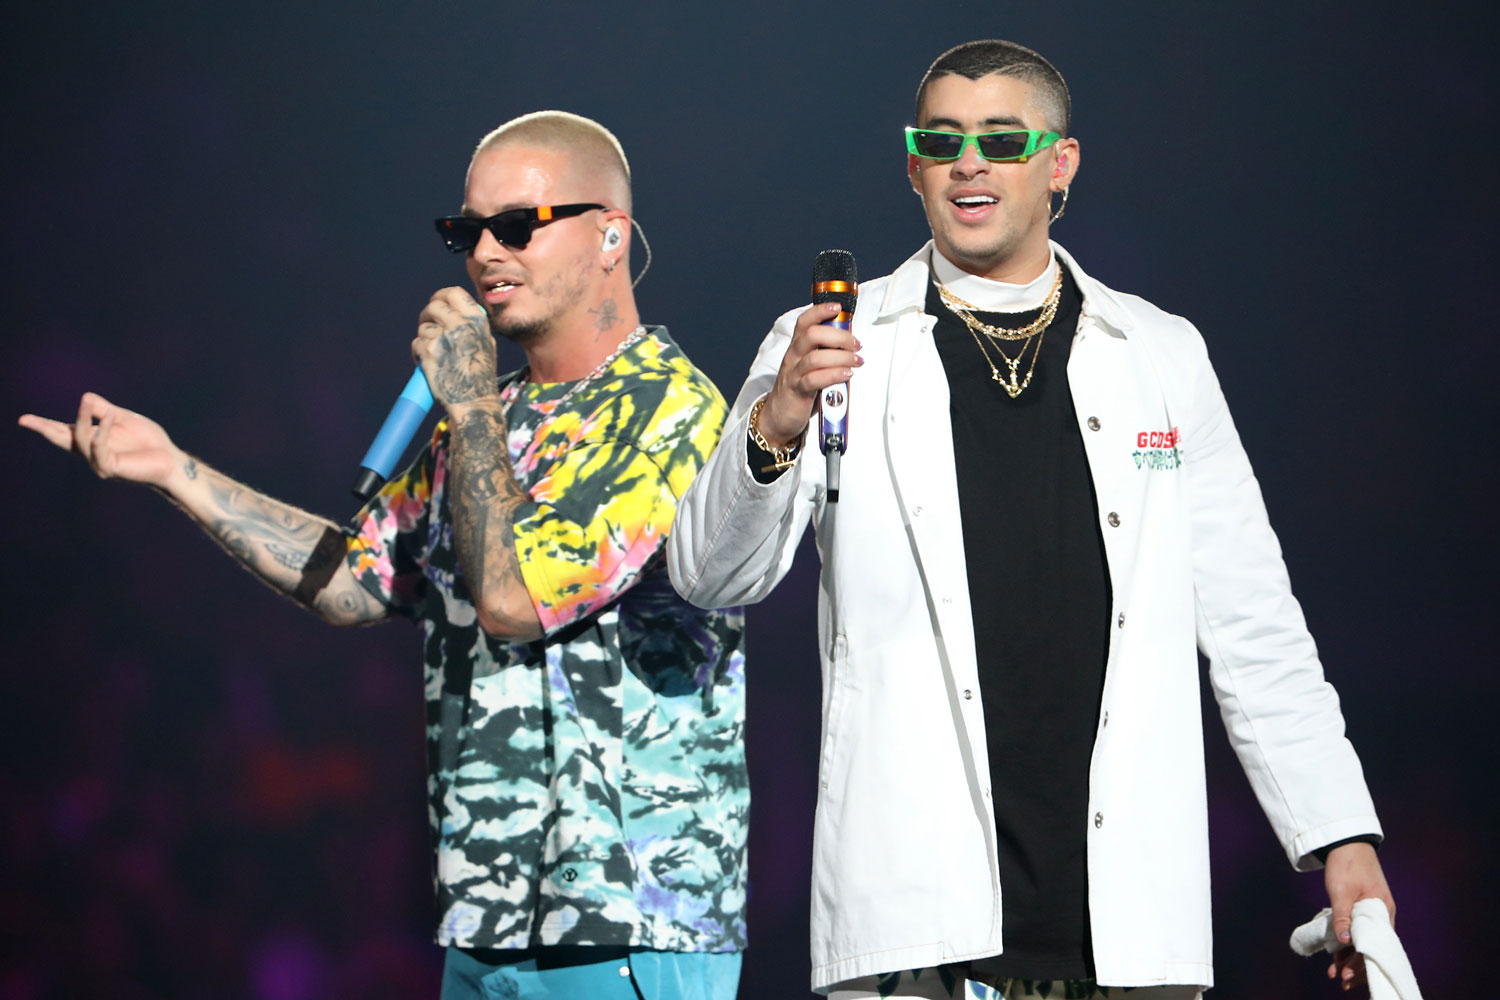 Oasis': How J Balvin, Bad Bunny Made the Collab Album of the Summer -  Rolling Stone